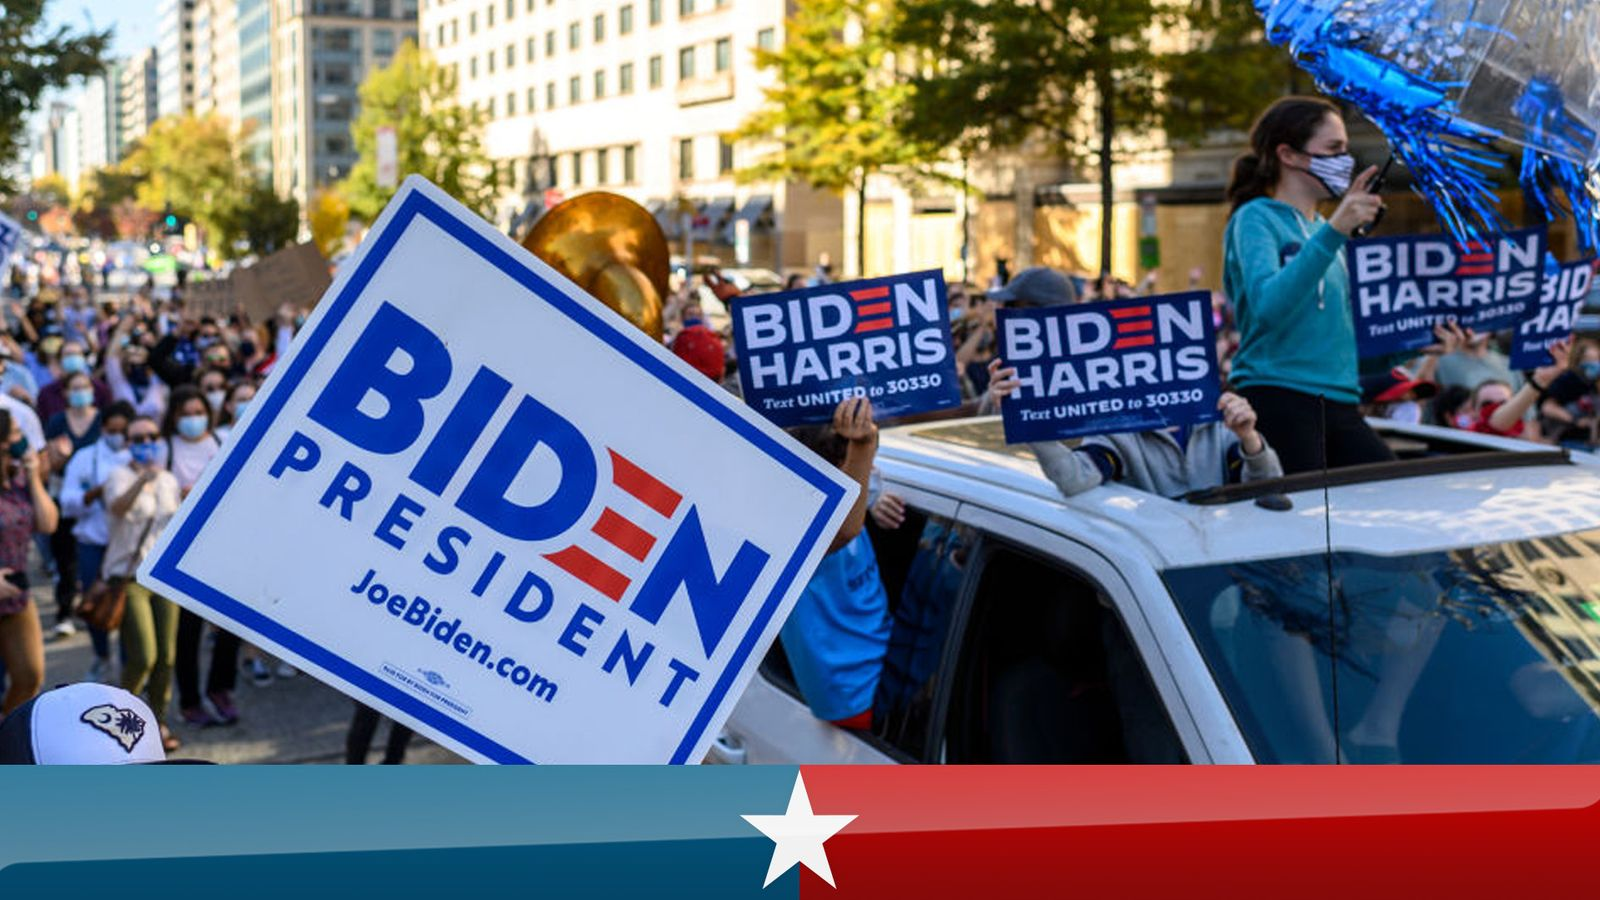 US election results: World leaders react to news that Joe Biden will be the next president